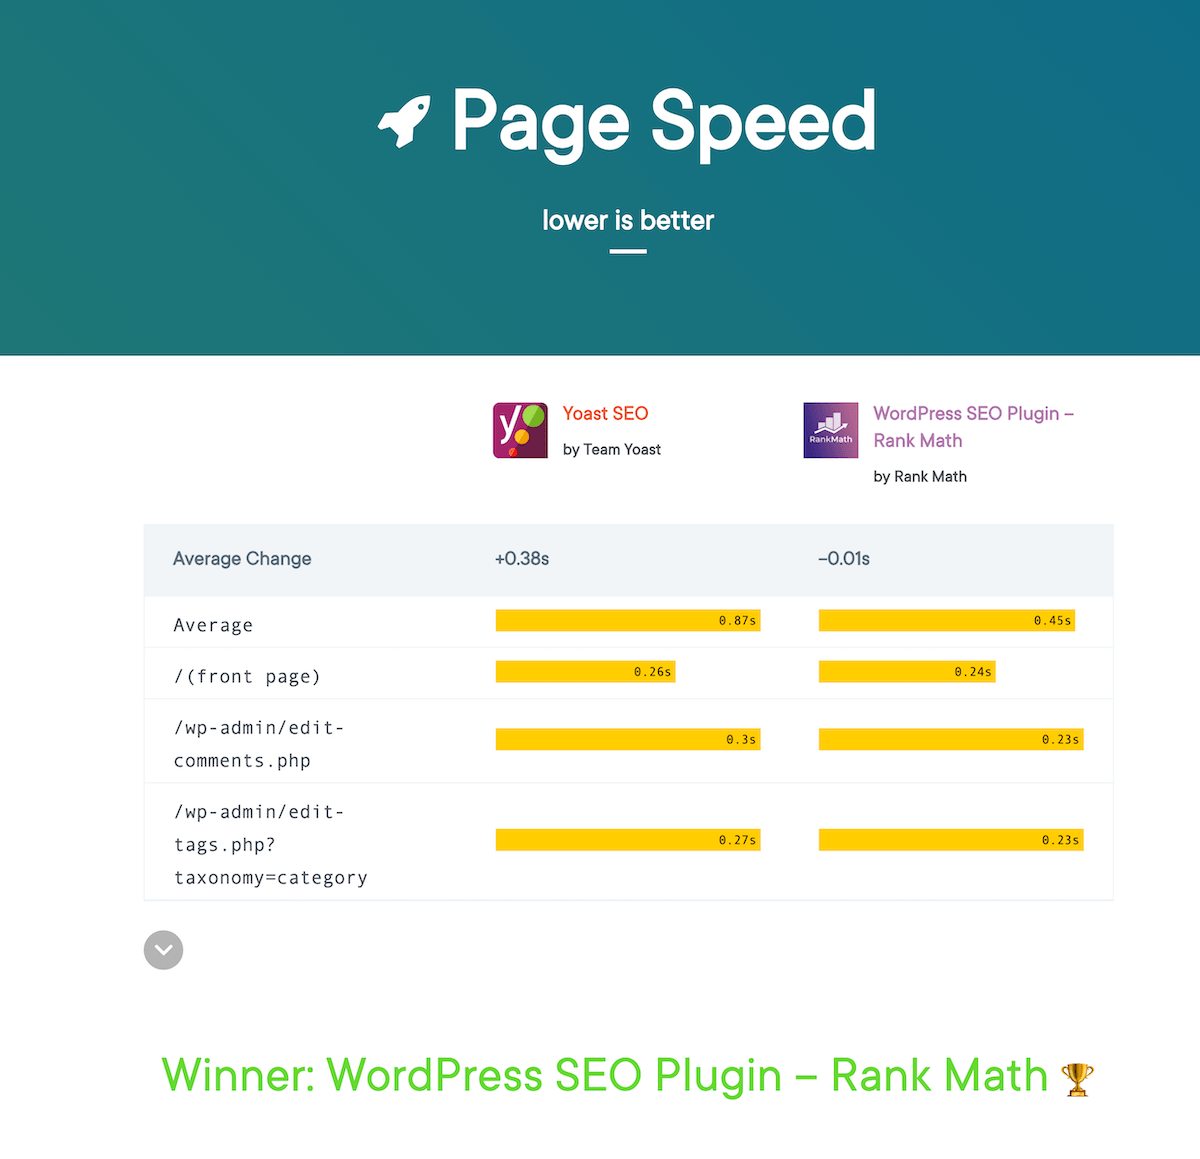 WP-Hive-Page Speed